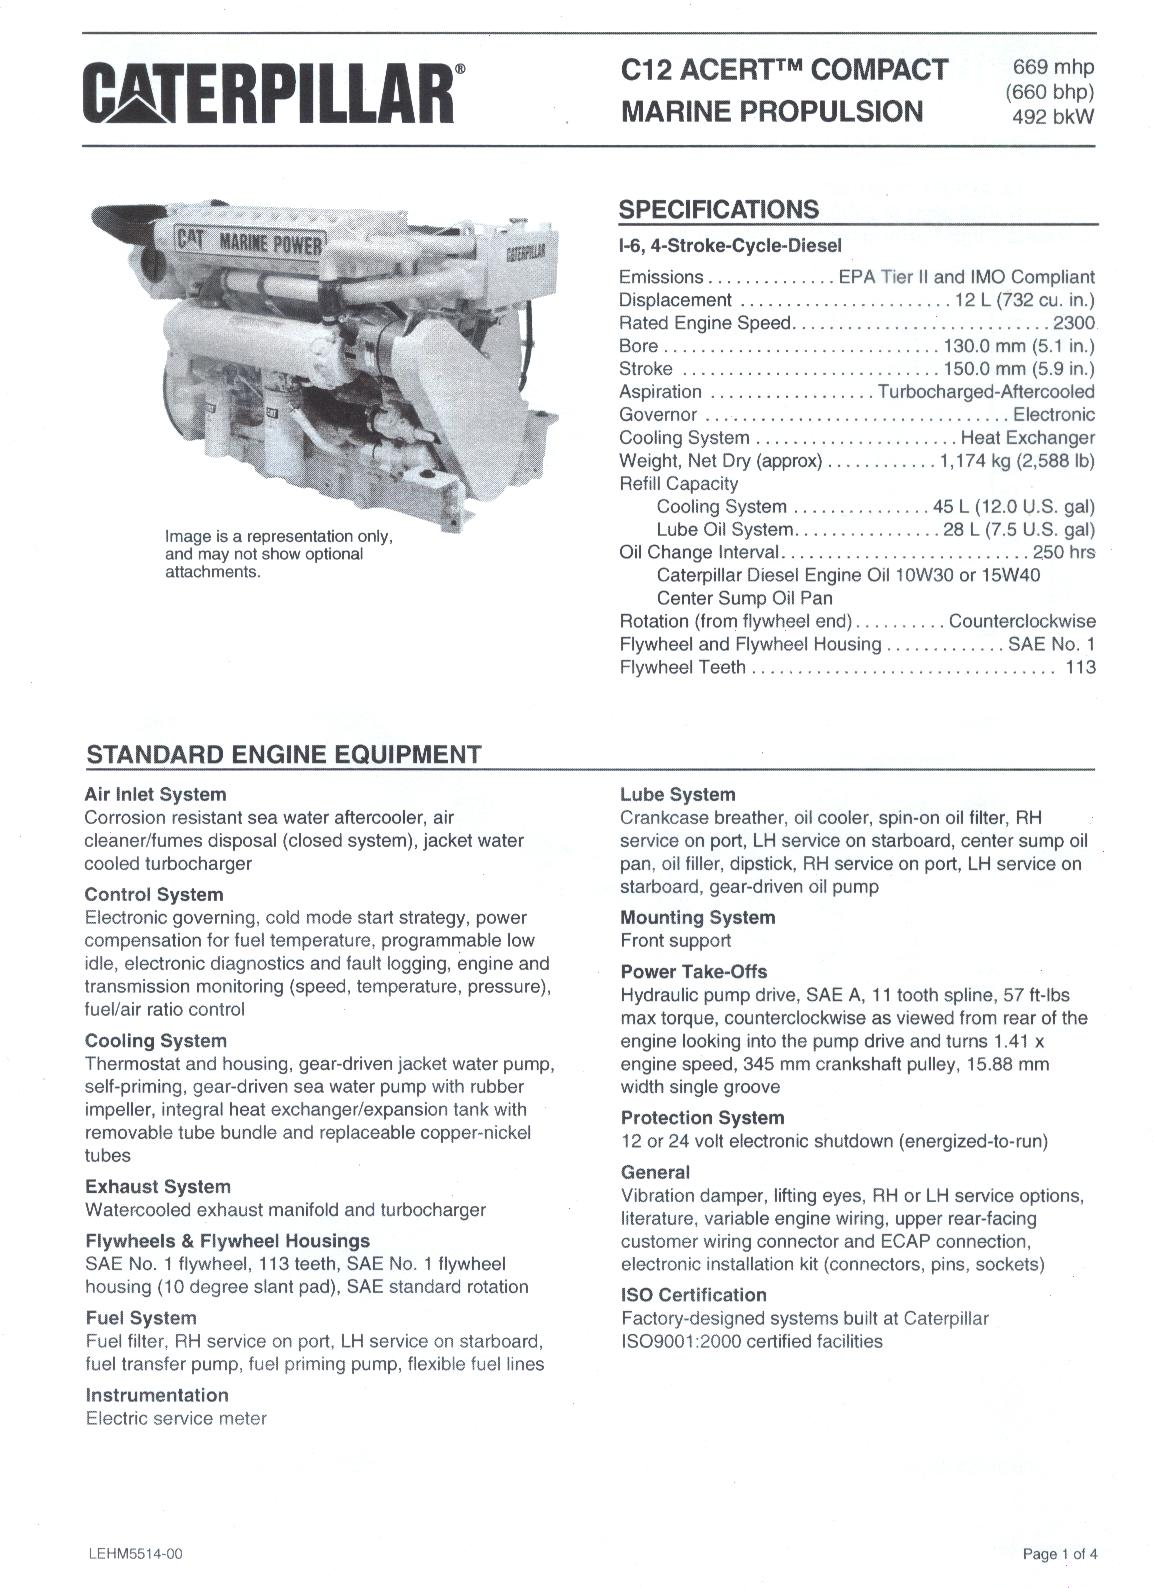 Caterpillar Starter Wiring Diagram Electrical Cat C12 Engine Specifications Bing Images 3208 24v Solenoid